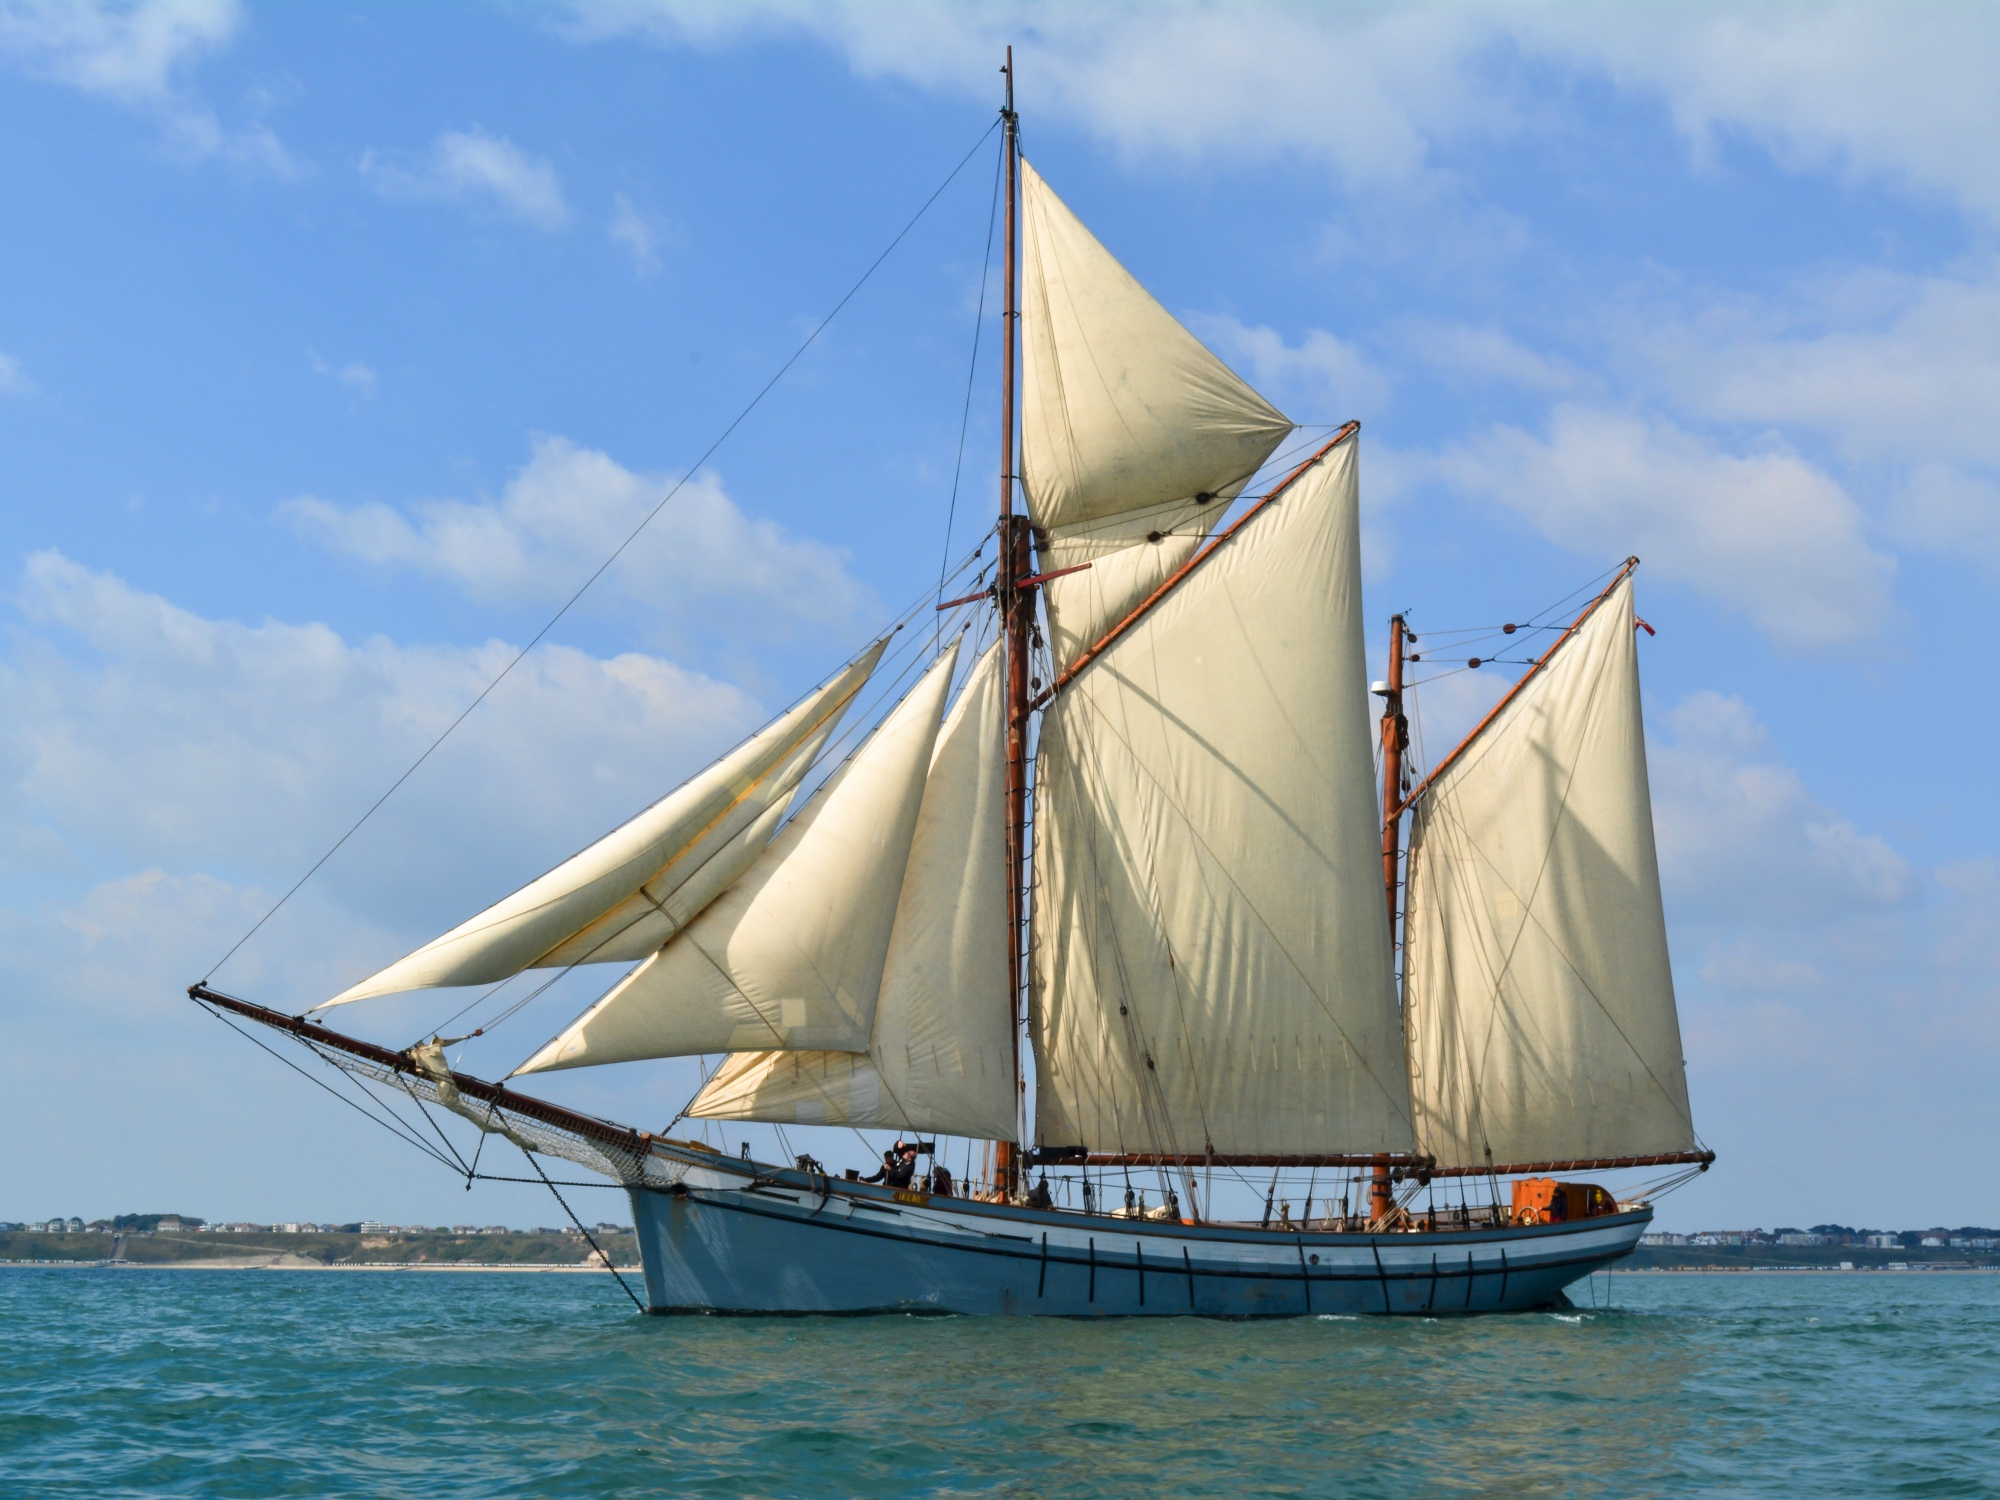 S/V Irene - Exhilarating Sailing and Great Hospitality. UK Waters